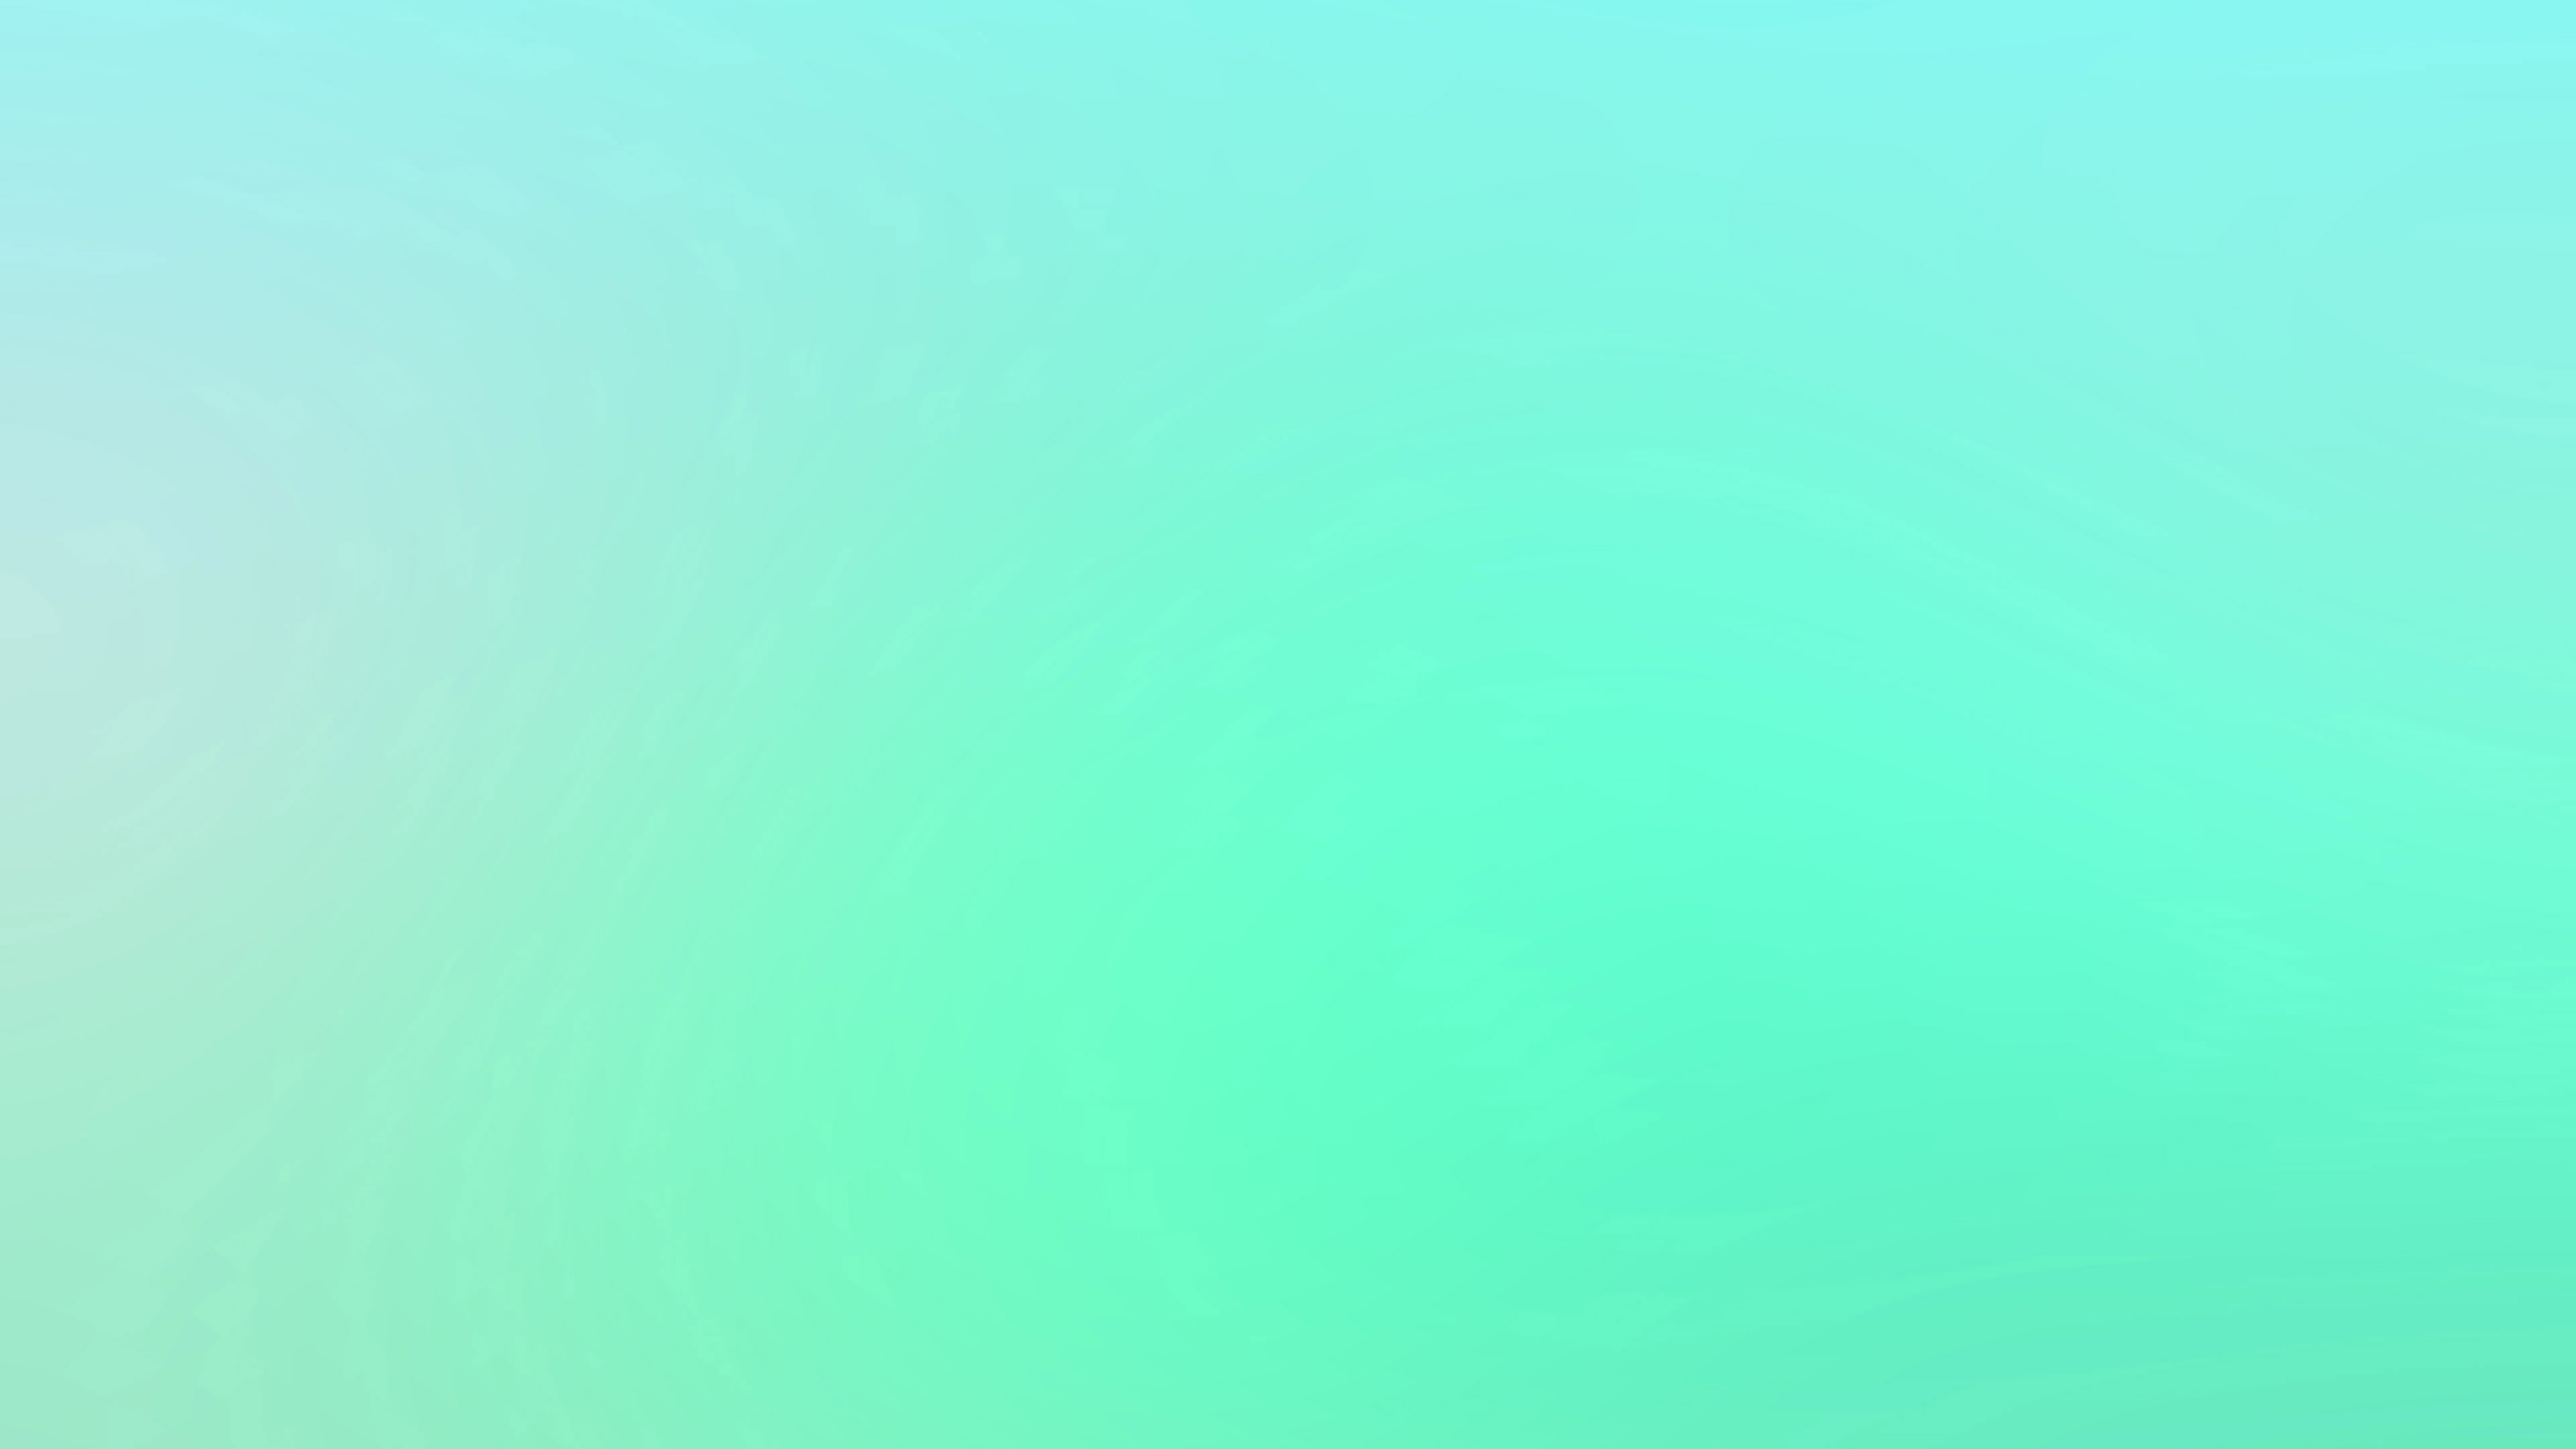 Google Fall Wallpaper Sb39 Wallpaper Green Blue Pastel Blur Papers Co